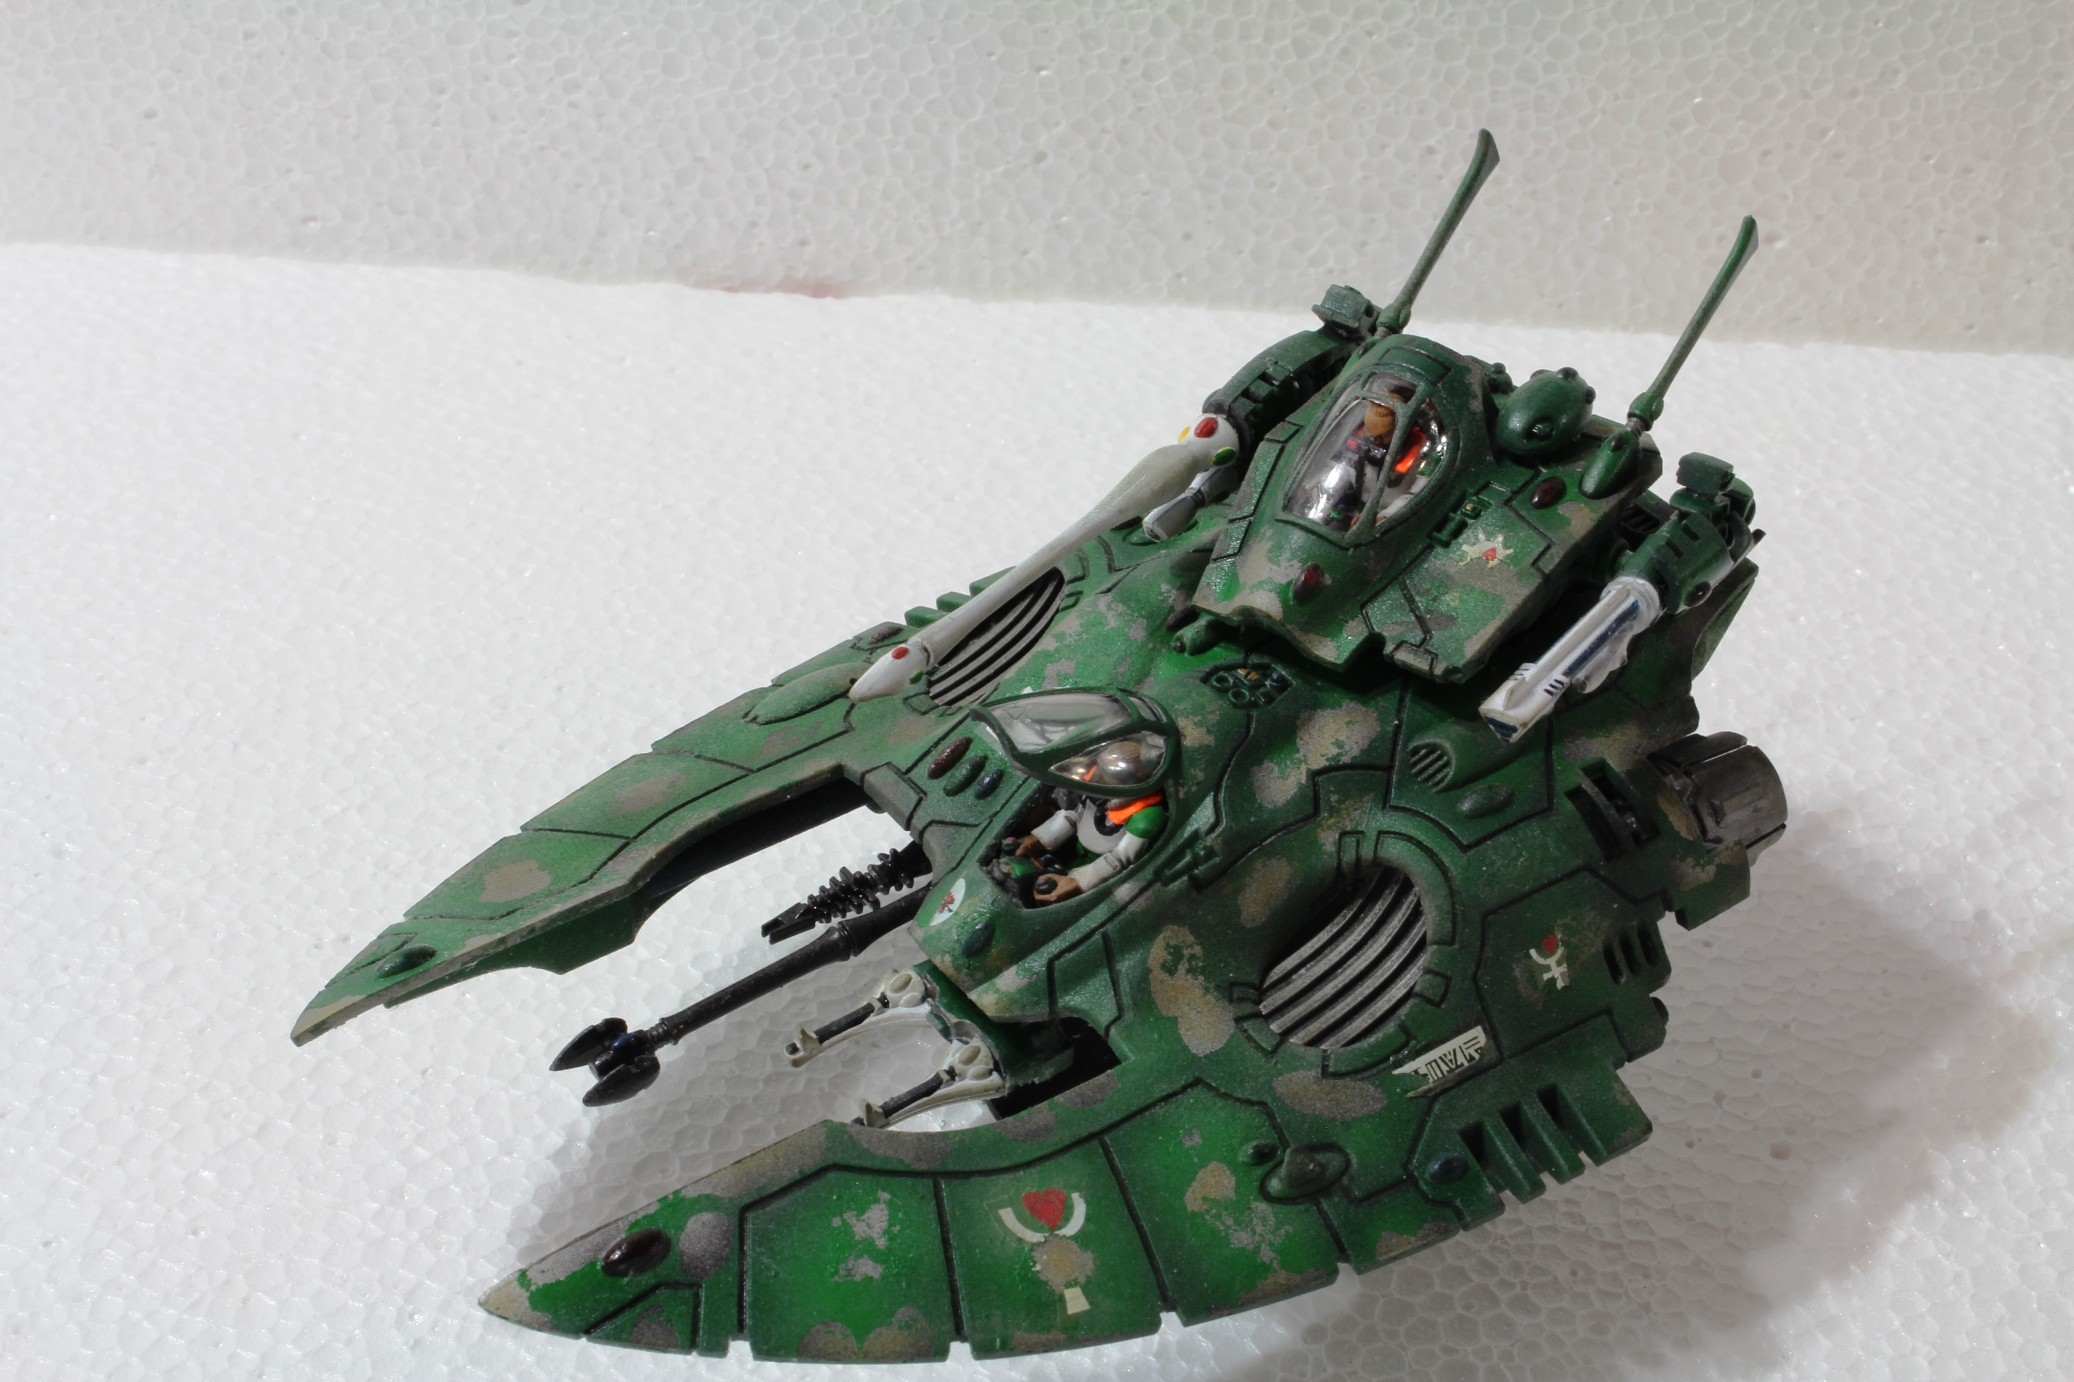 Falcon Grav Tank from Bahzhakhain Bieltan Craftword